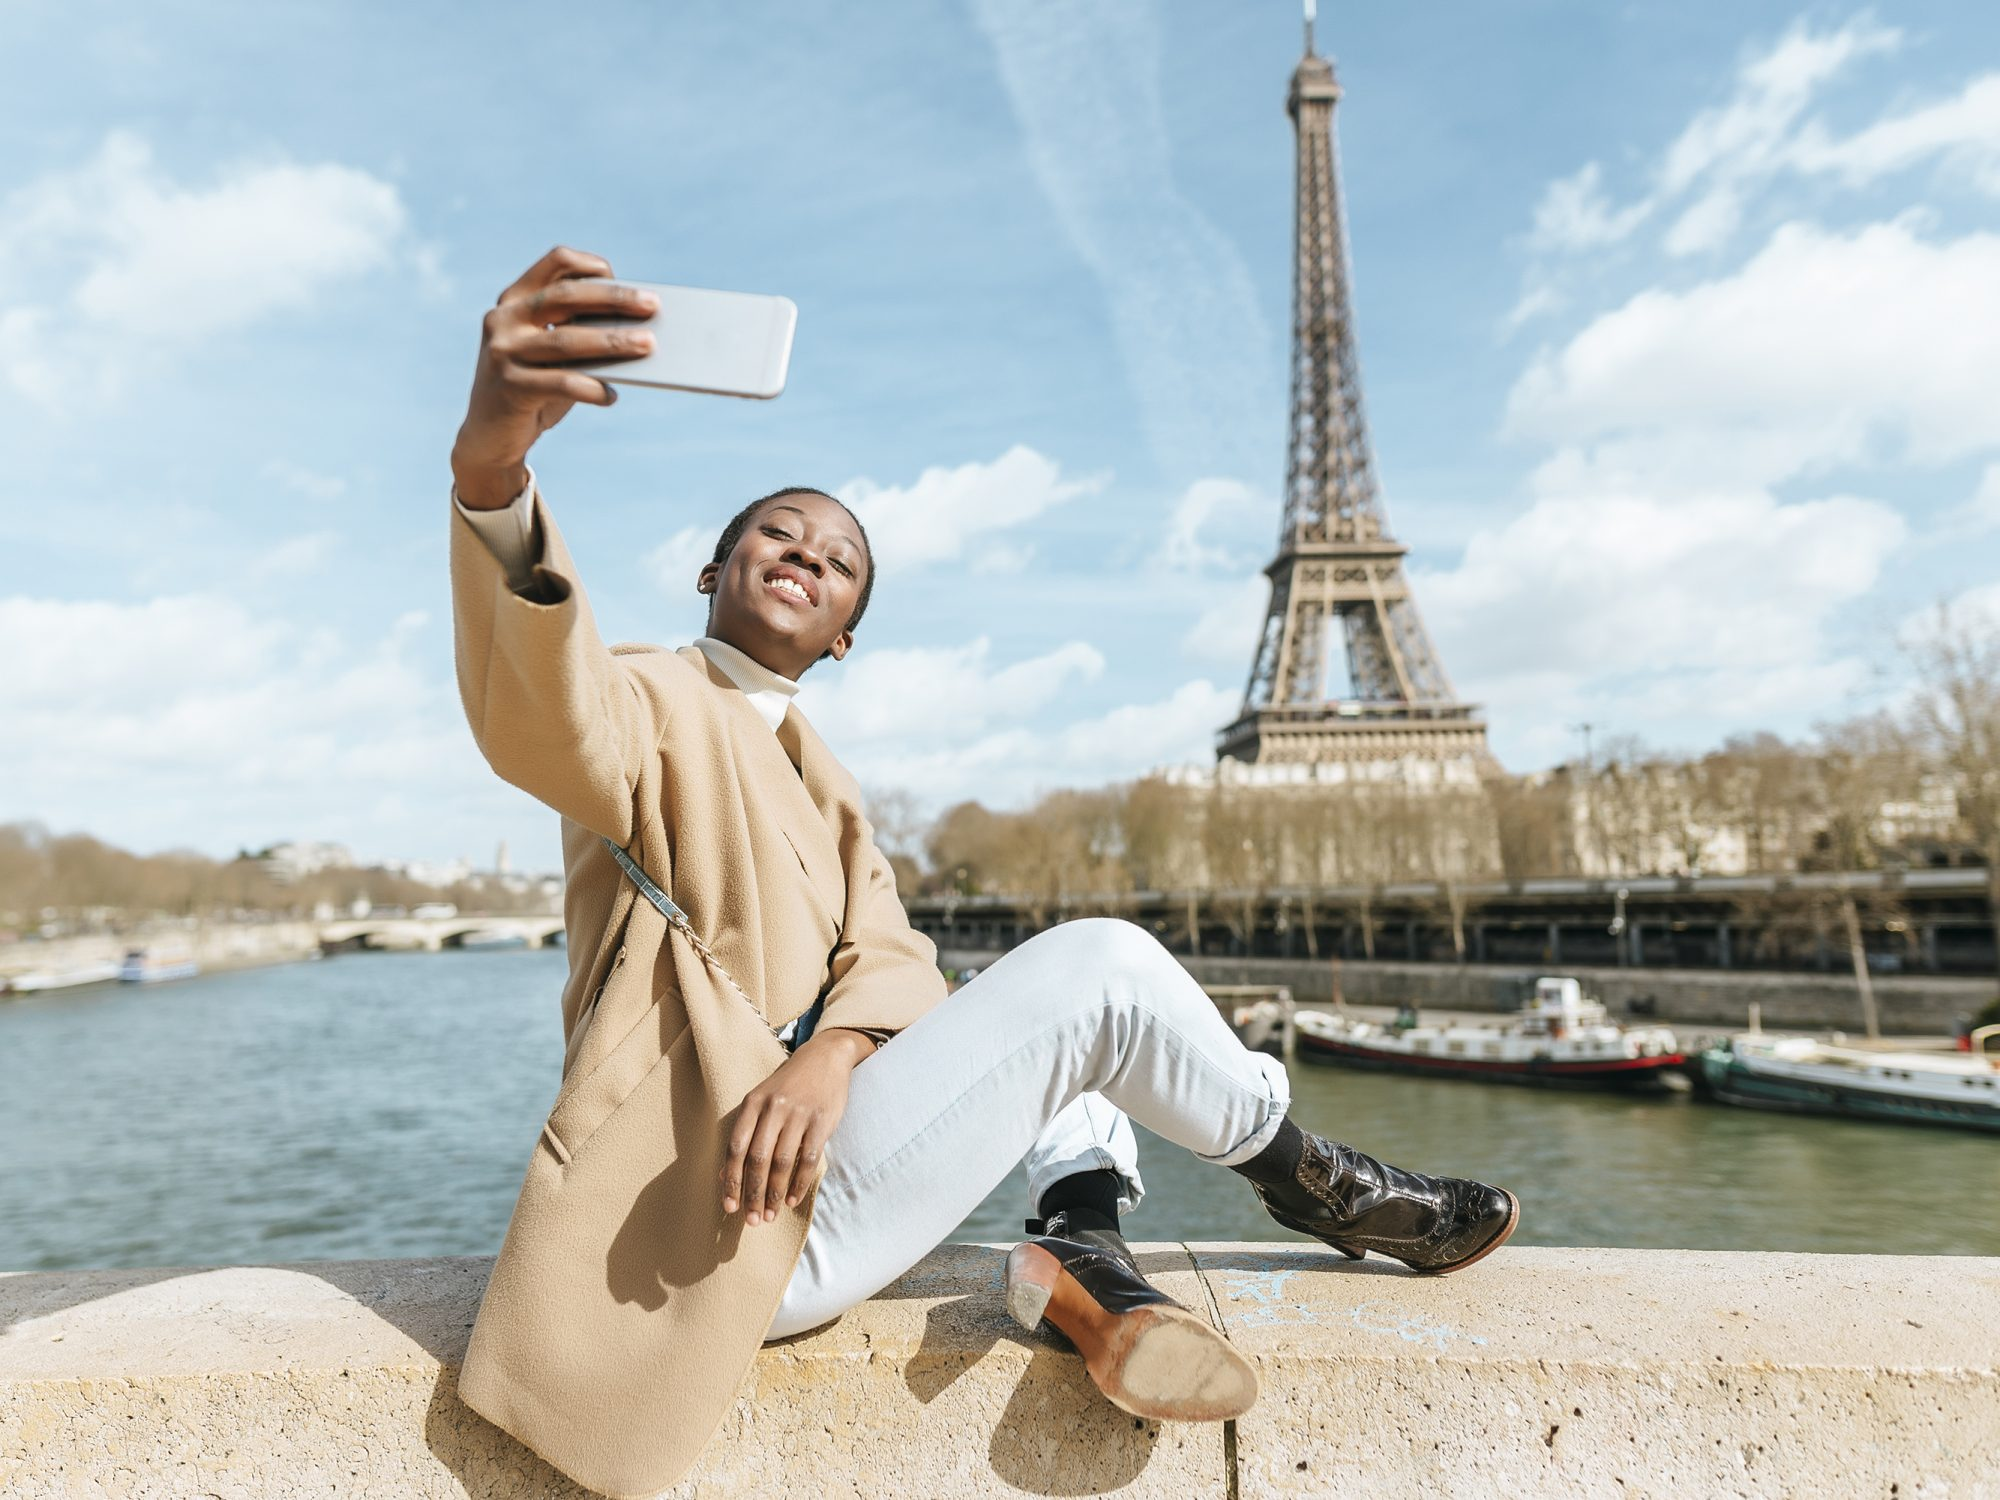 how-to-make-money-on-instagram-influencer: woman taking selfie in Paris